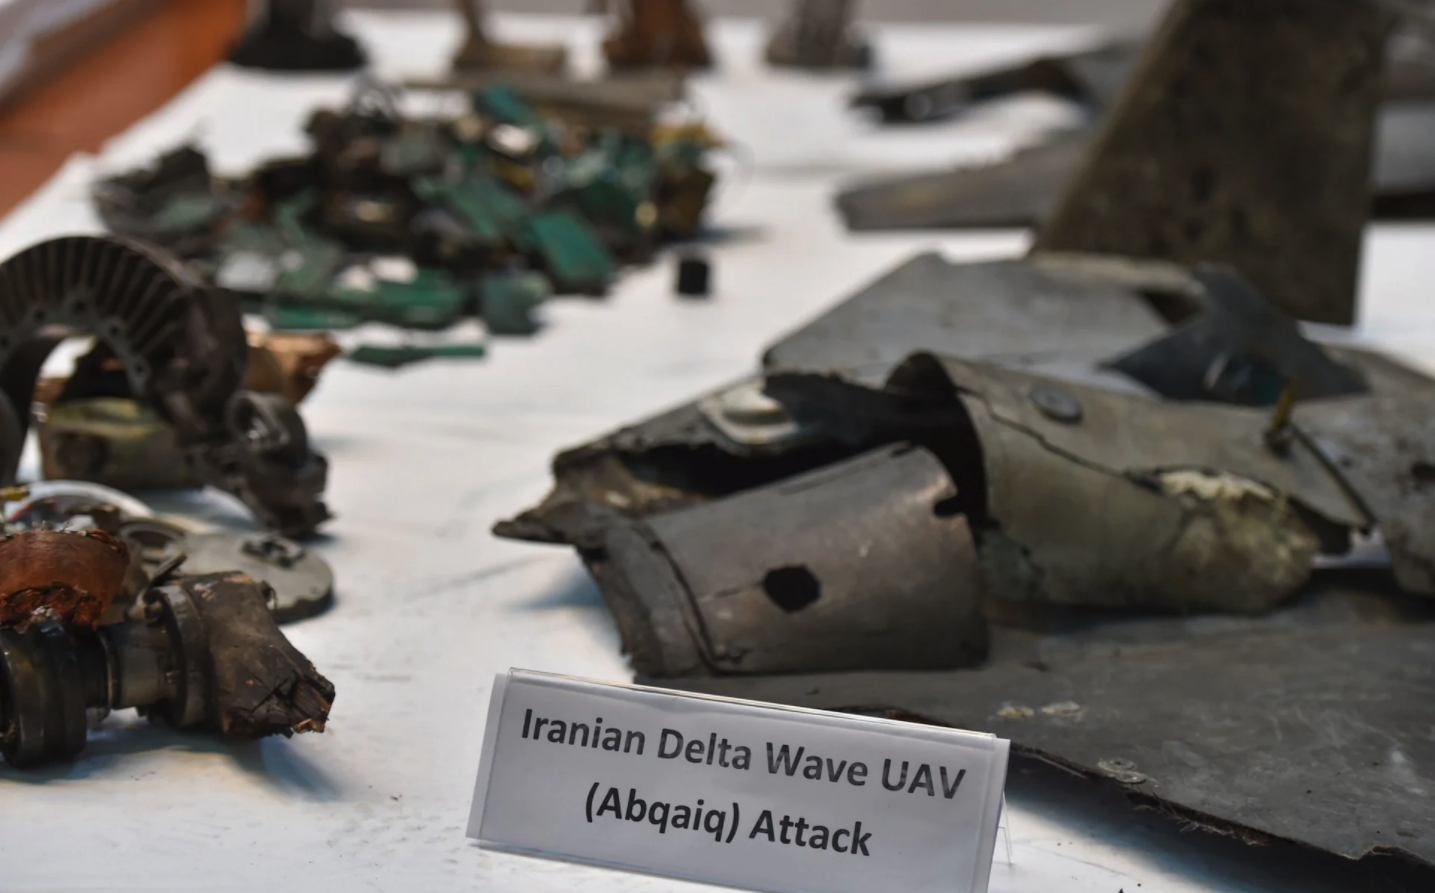 A picture taken on September 18, 2019 shows displayed fragments of what the Saudi defence ministry spokesman said were Iranian cruise missiles and drones